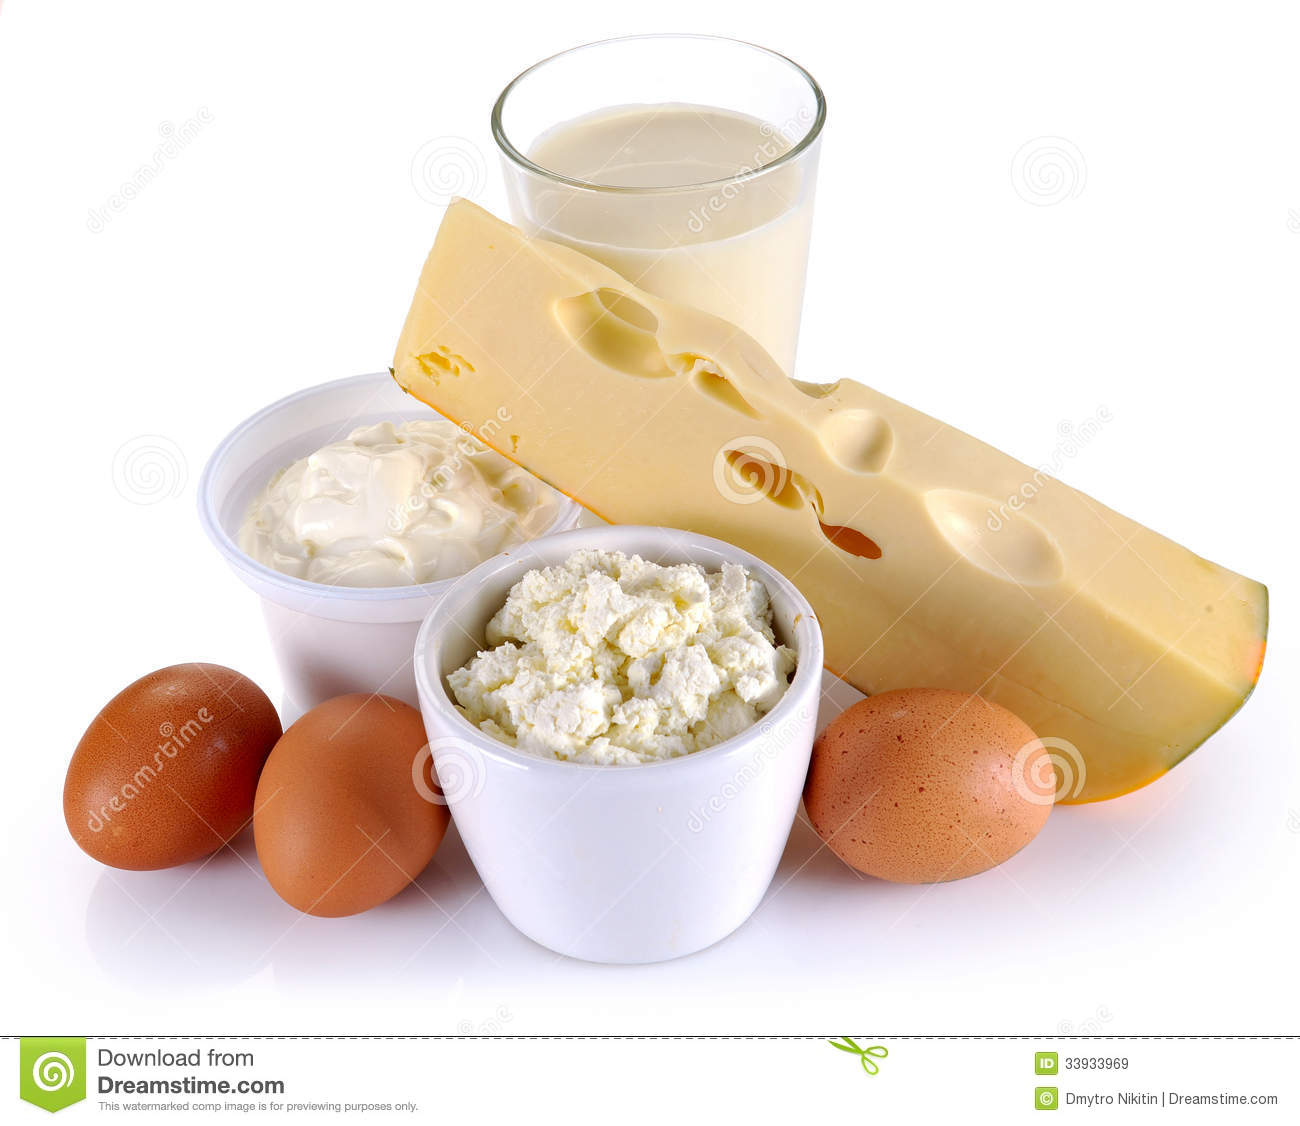 Dairy Products, Cheese And Eggs Stock Image - Image of ...